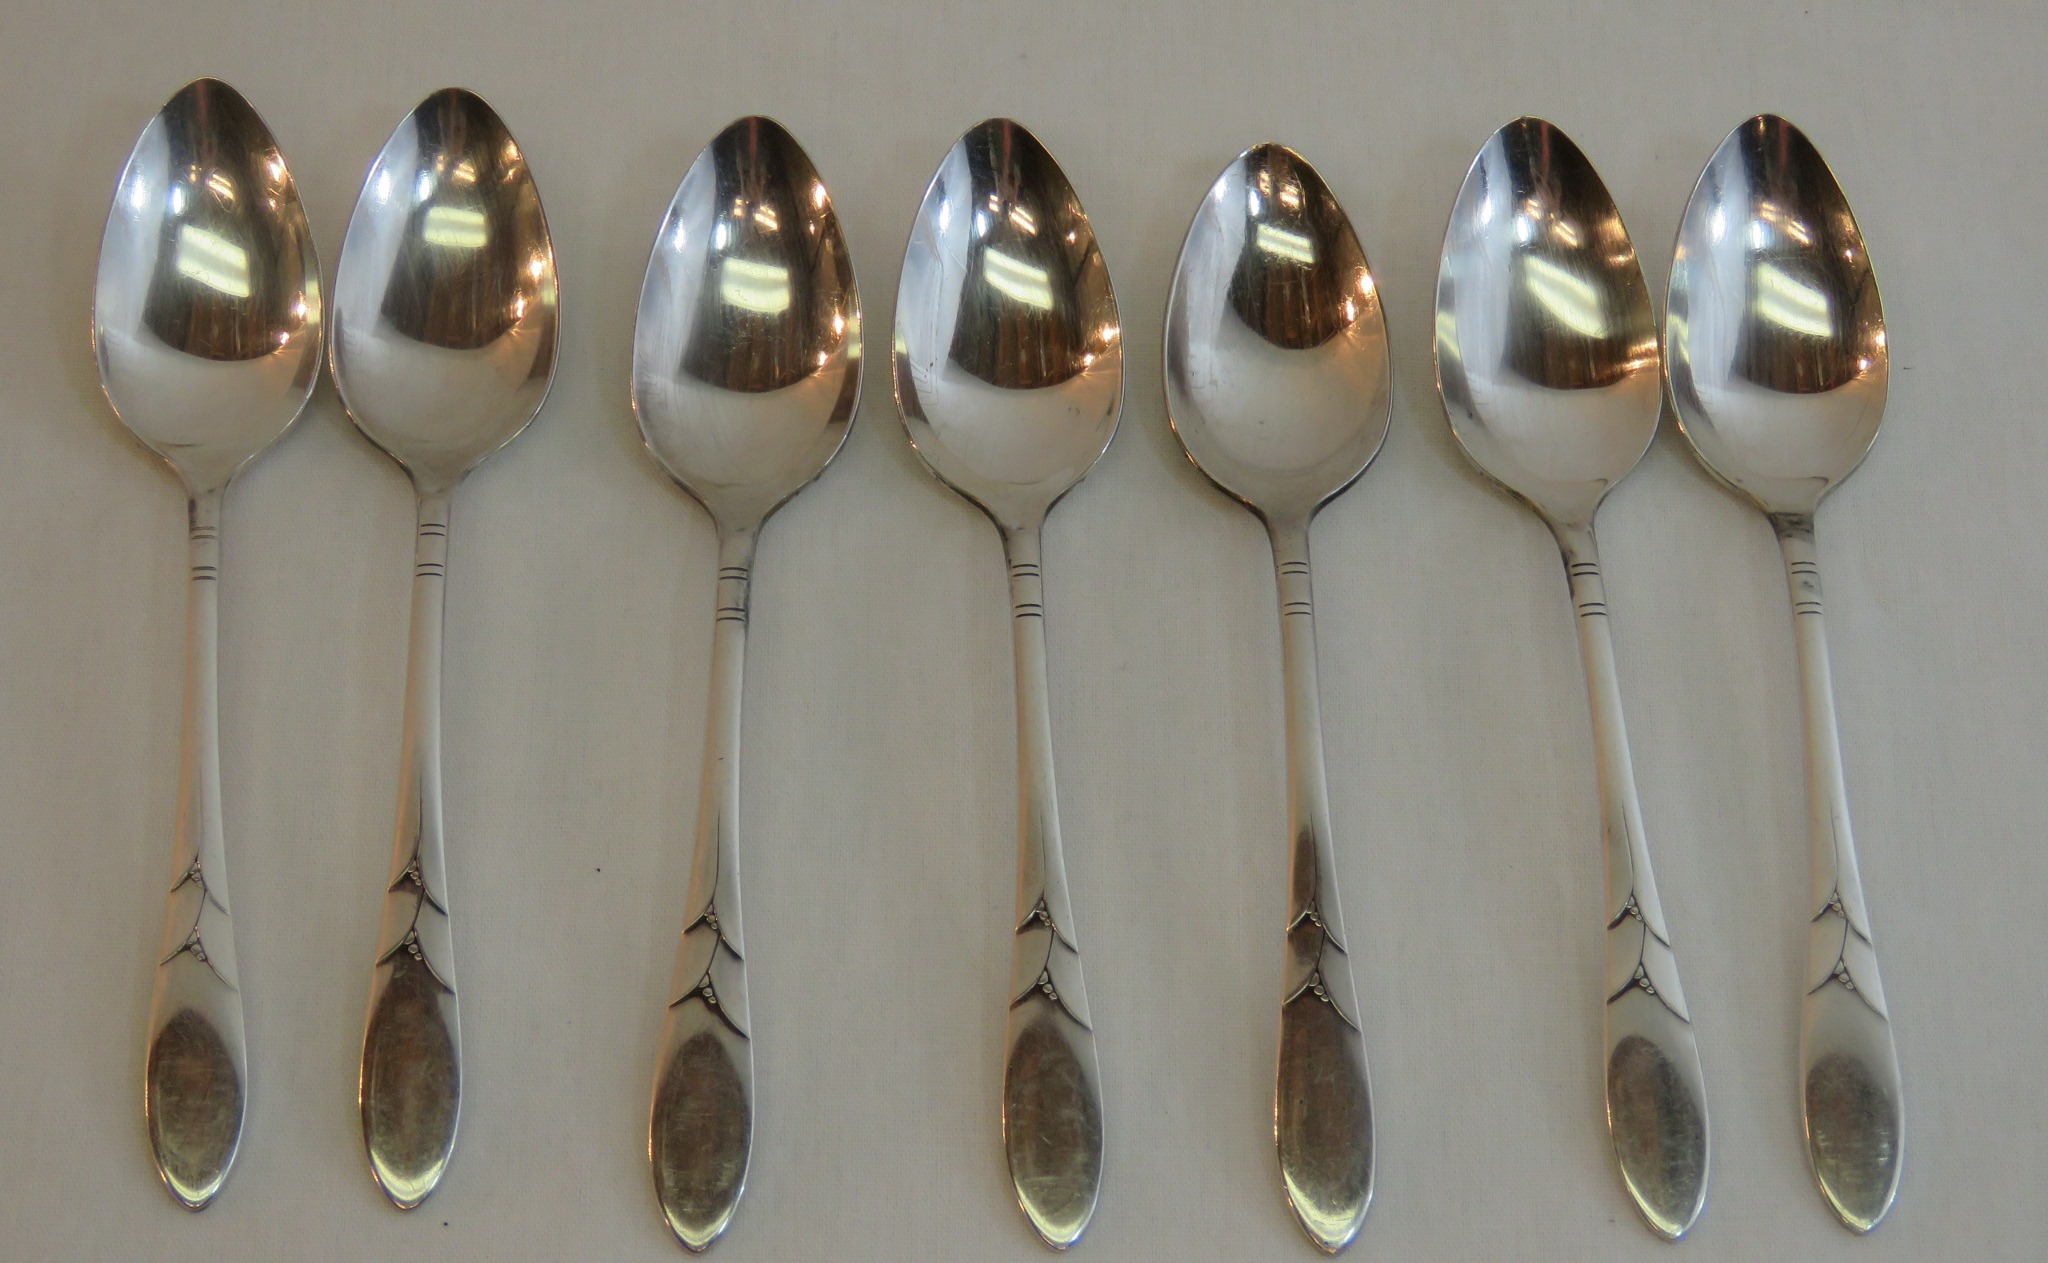 Vintage LADY HAMILTON COMMUNITY SILVERPLATE set of 7 COFFEE FIVE O'CLOCK SPOONS  (SIL-131)